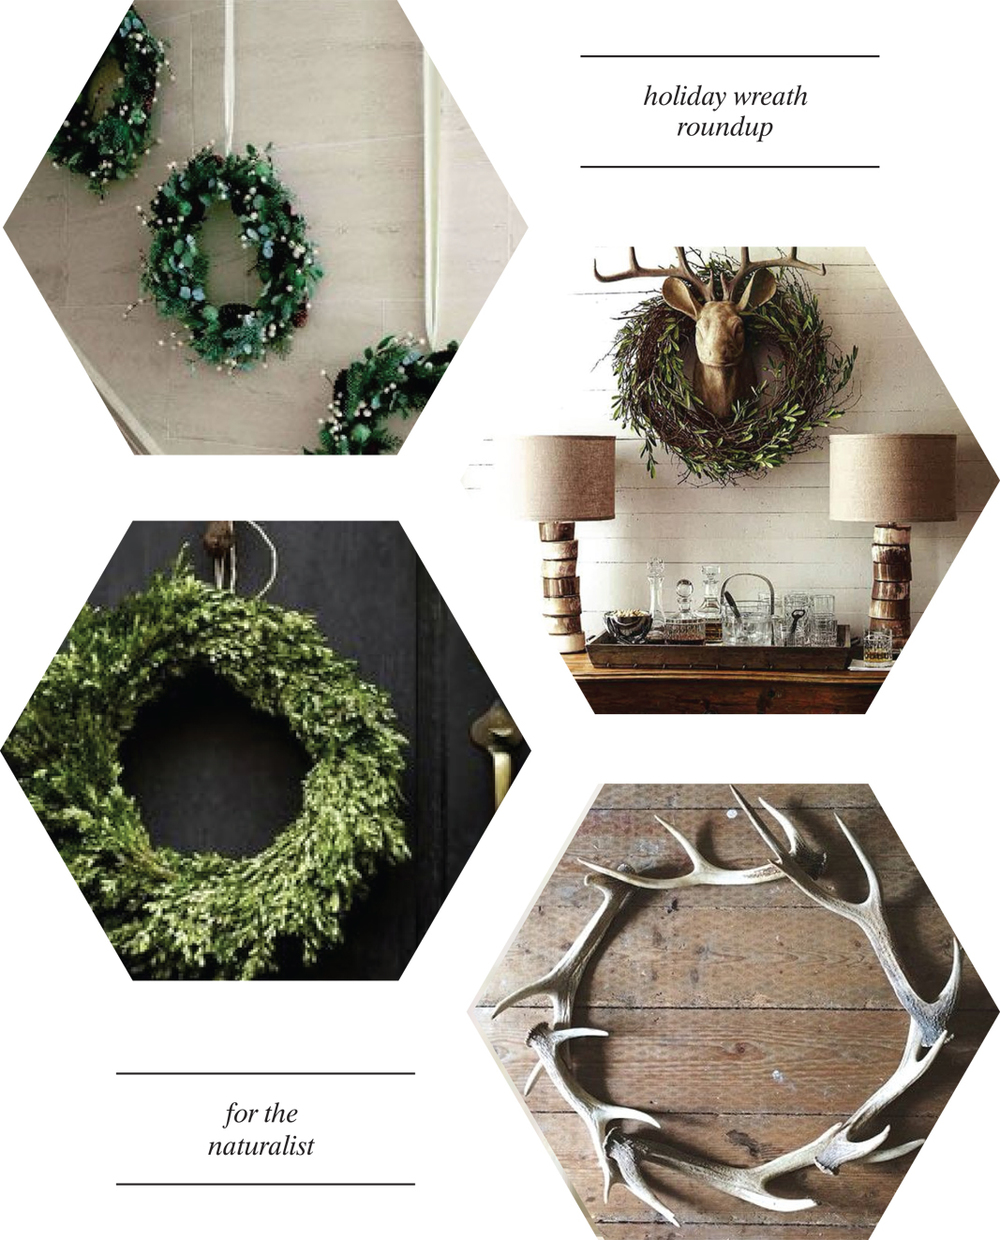 Roundup-wreath-and-packages.jpg